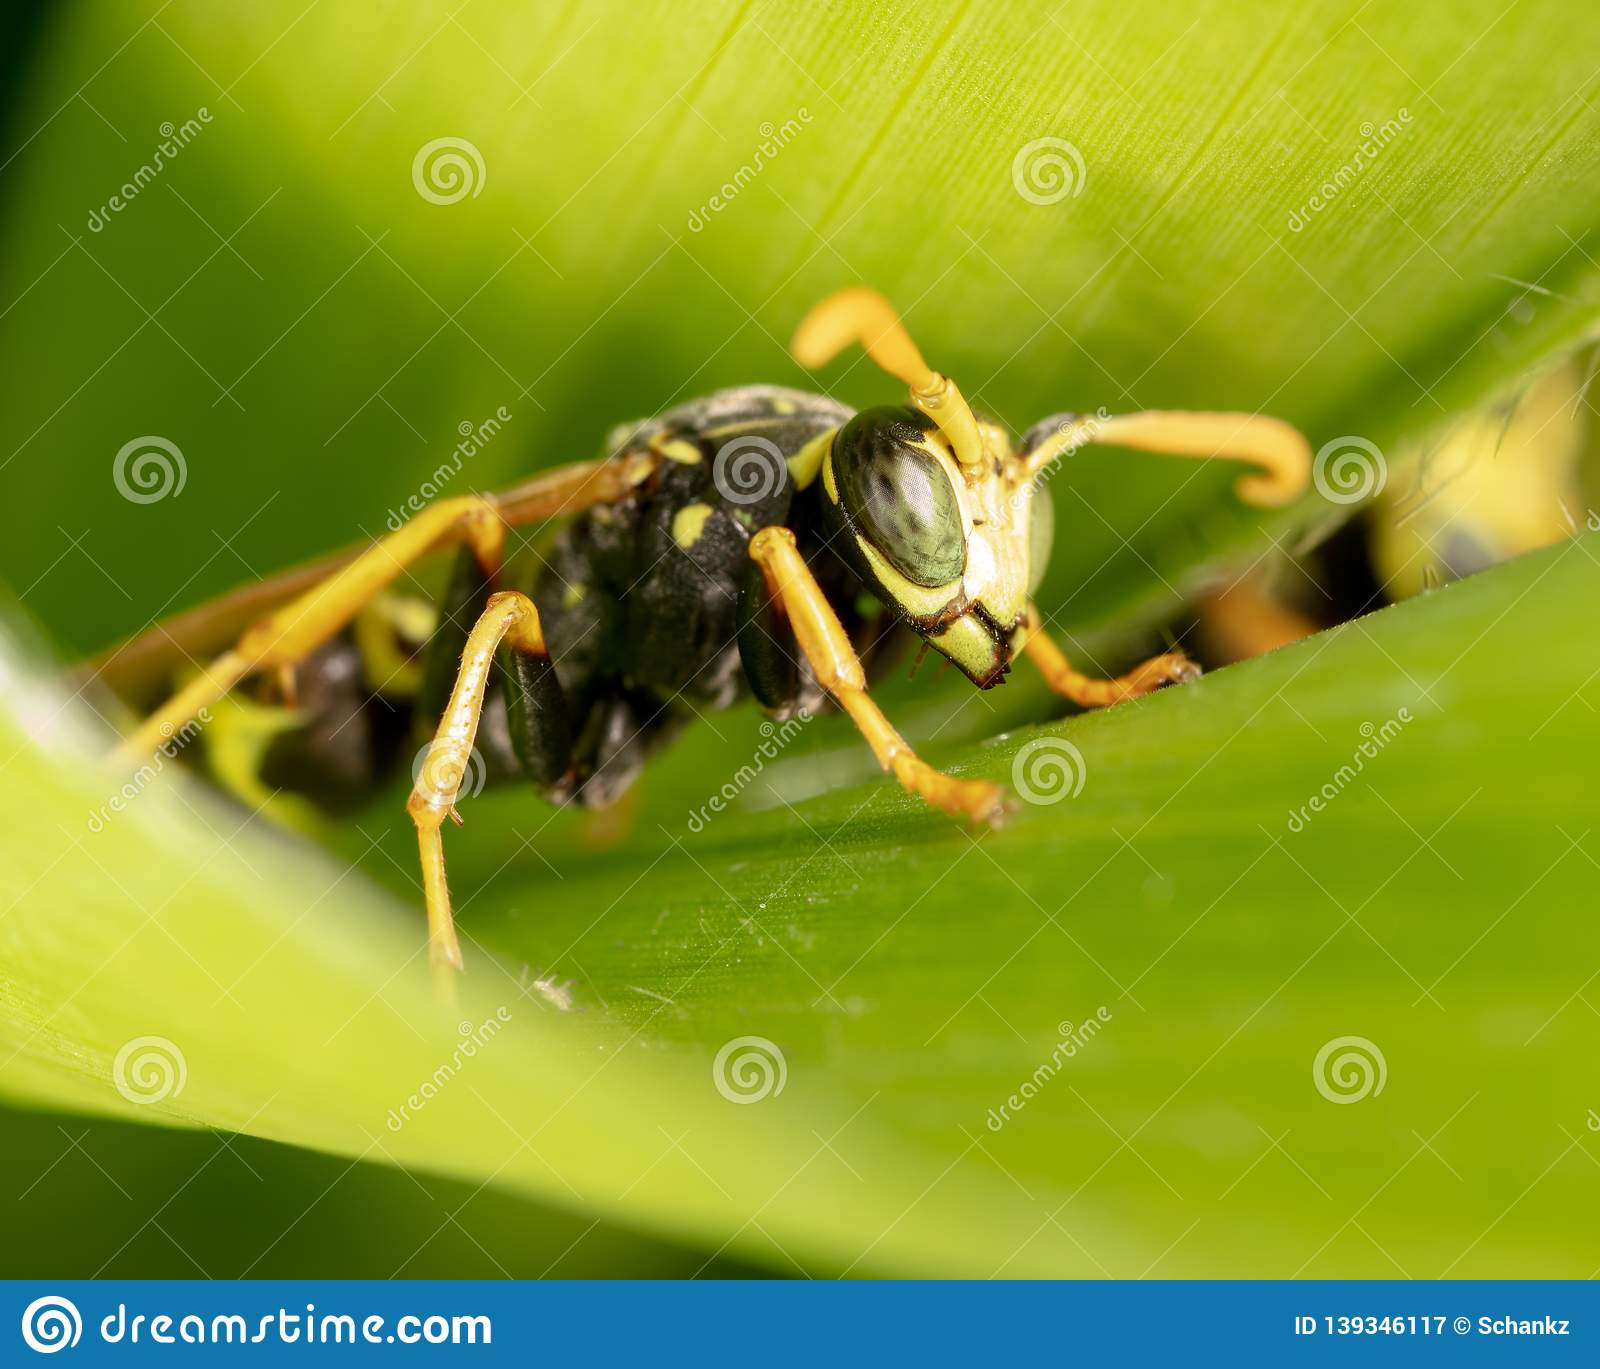 Portrait of a wasp on a green leaf